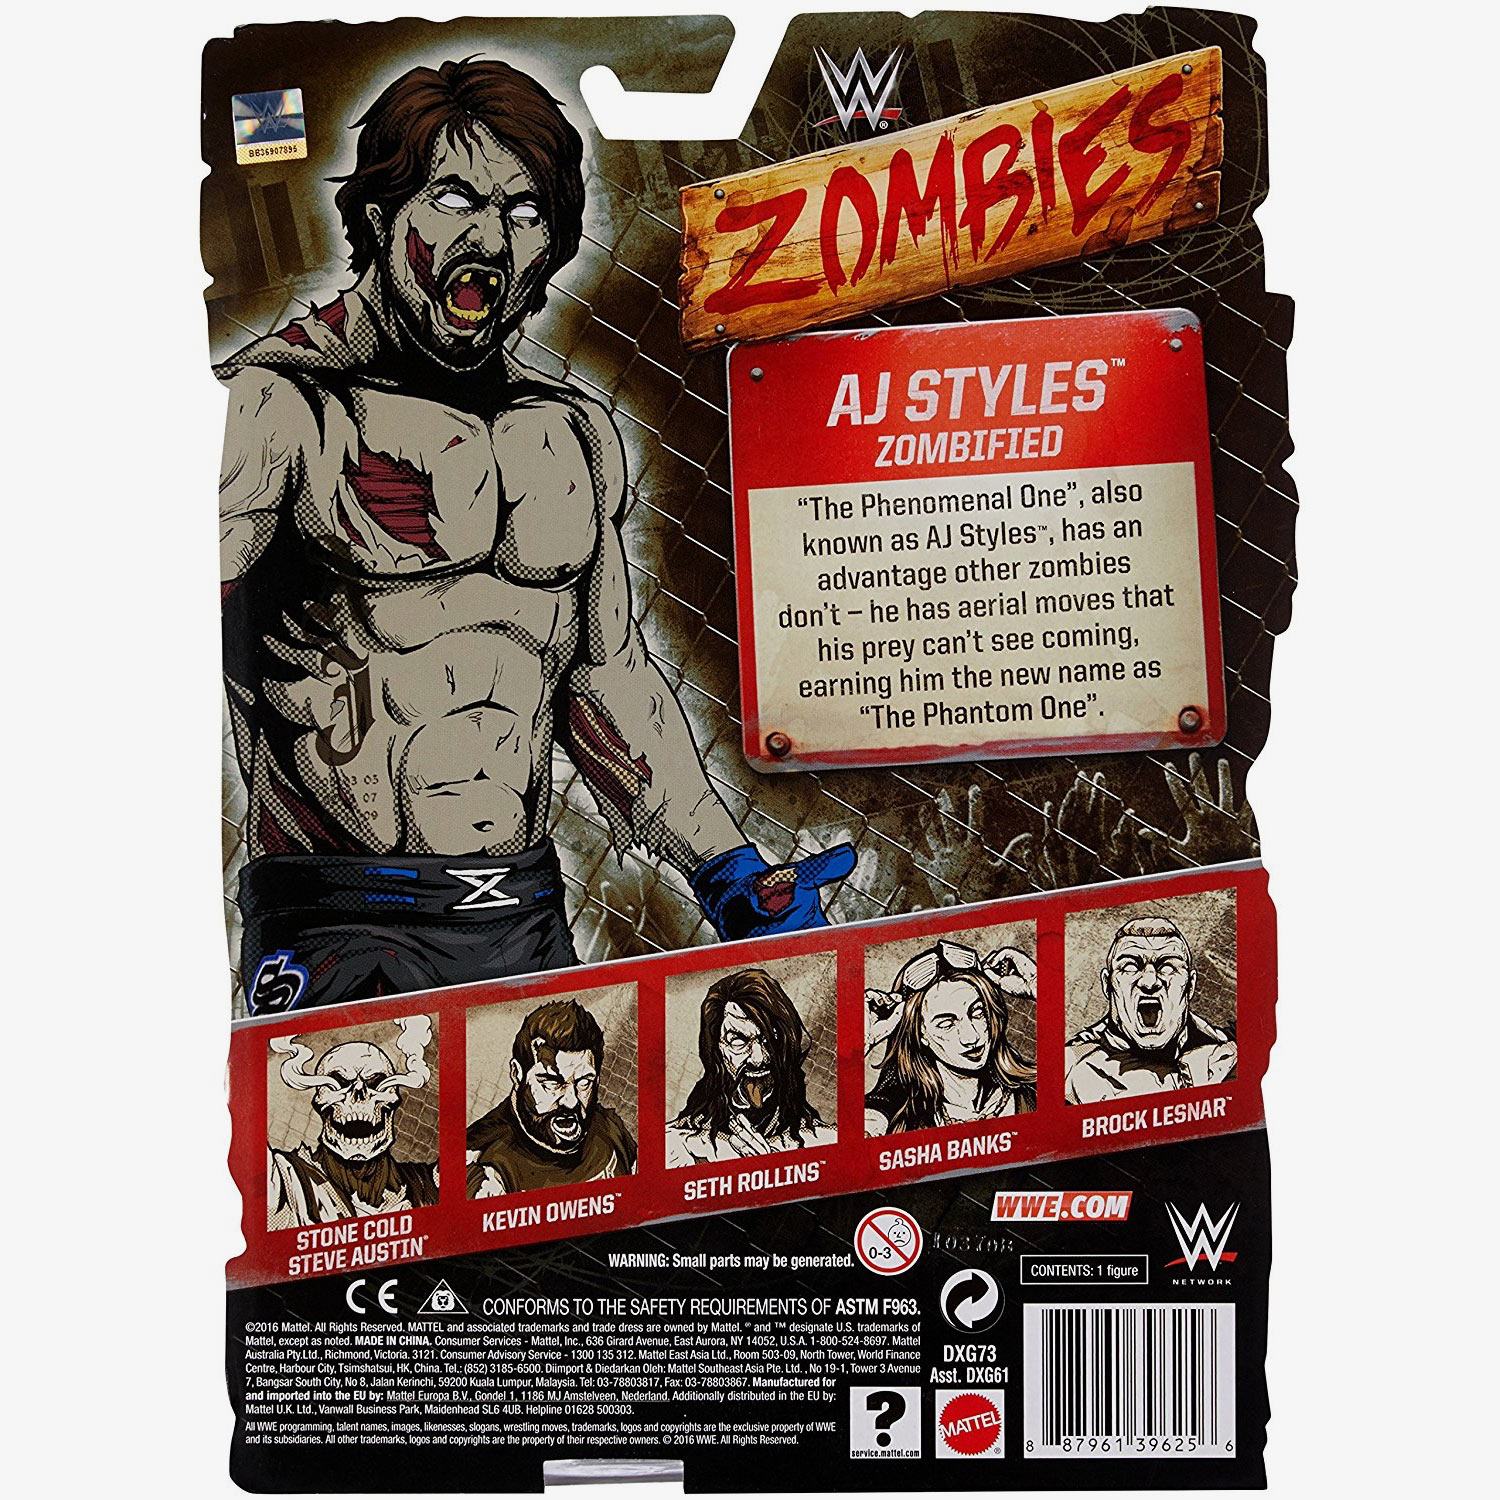 Aj Styles Wwe Zombies Series 2 Wrestling Action Figure